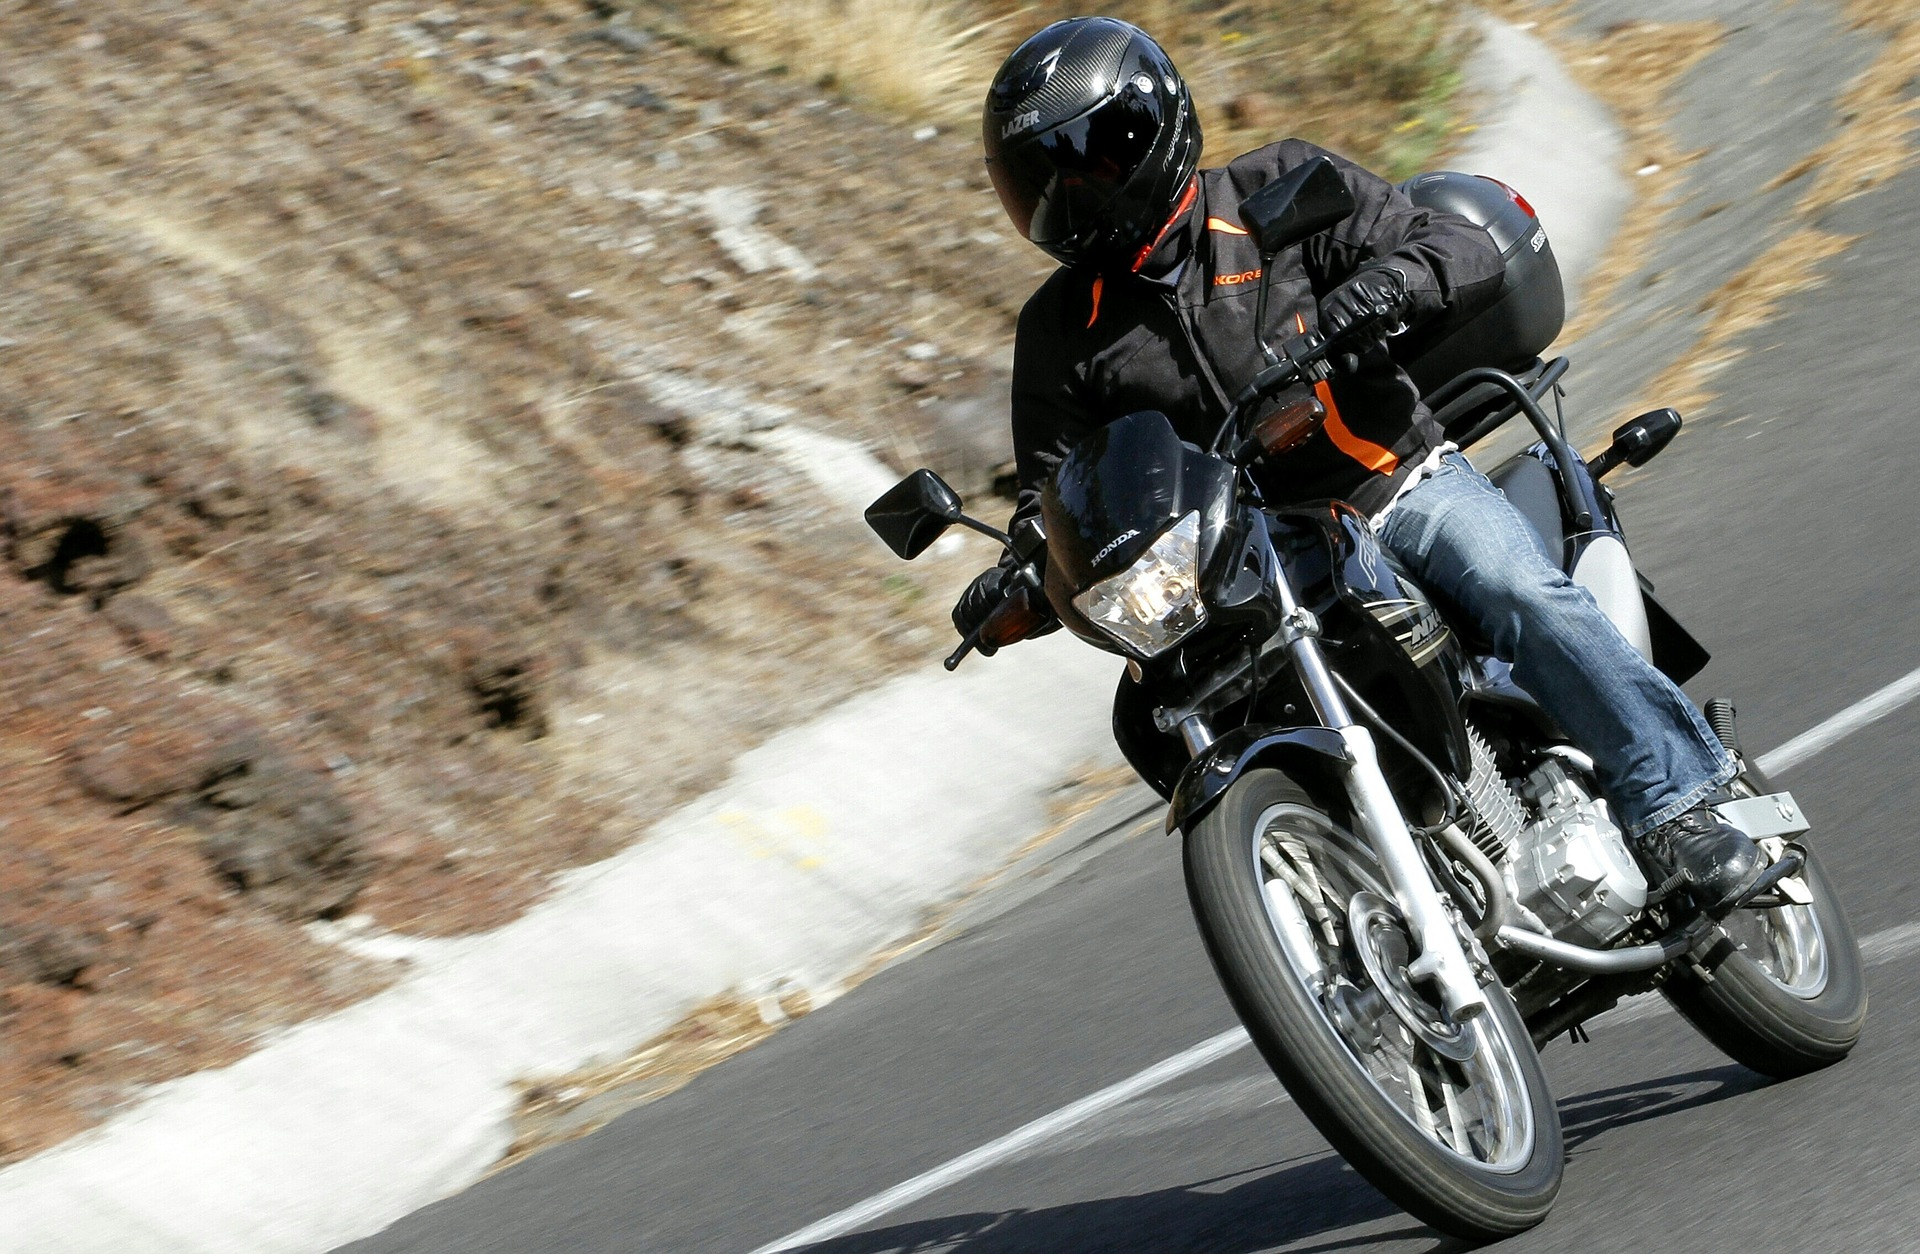 Top 10 Reasons to Be a Biker